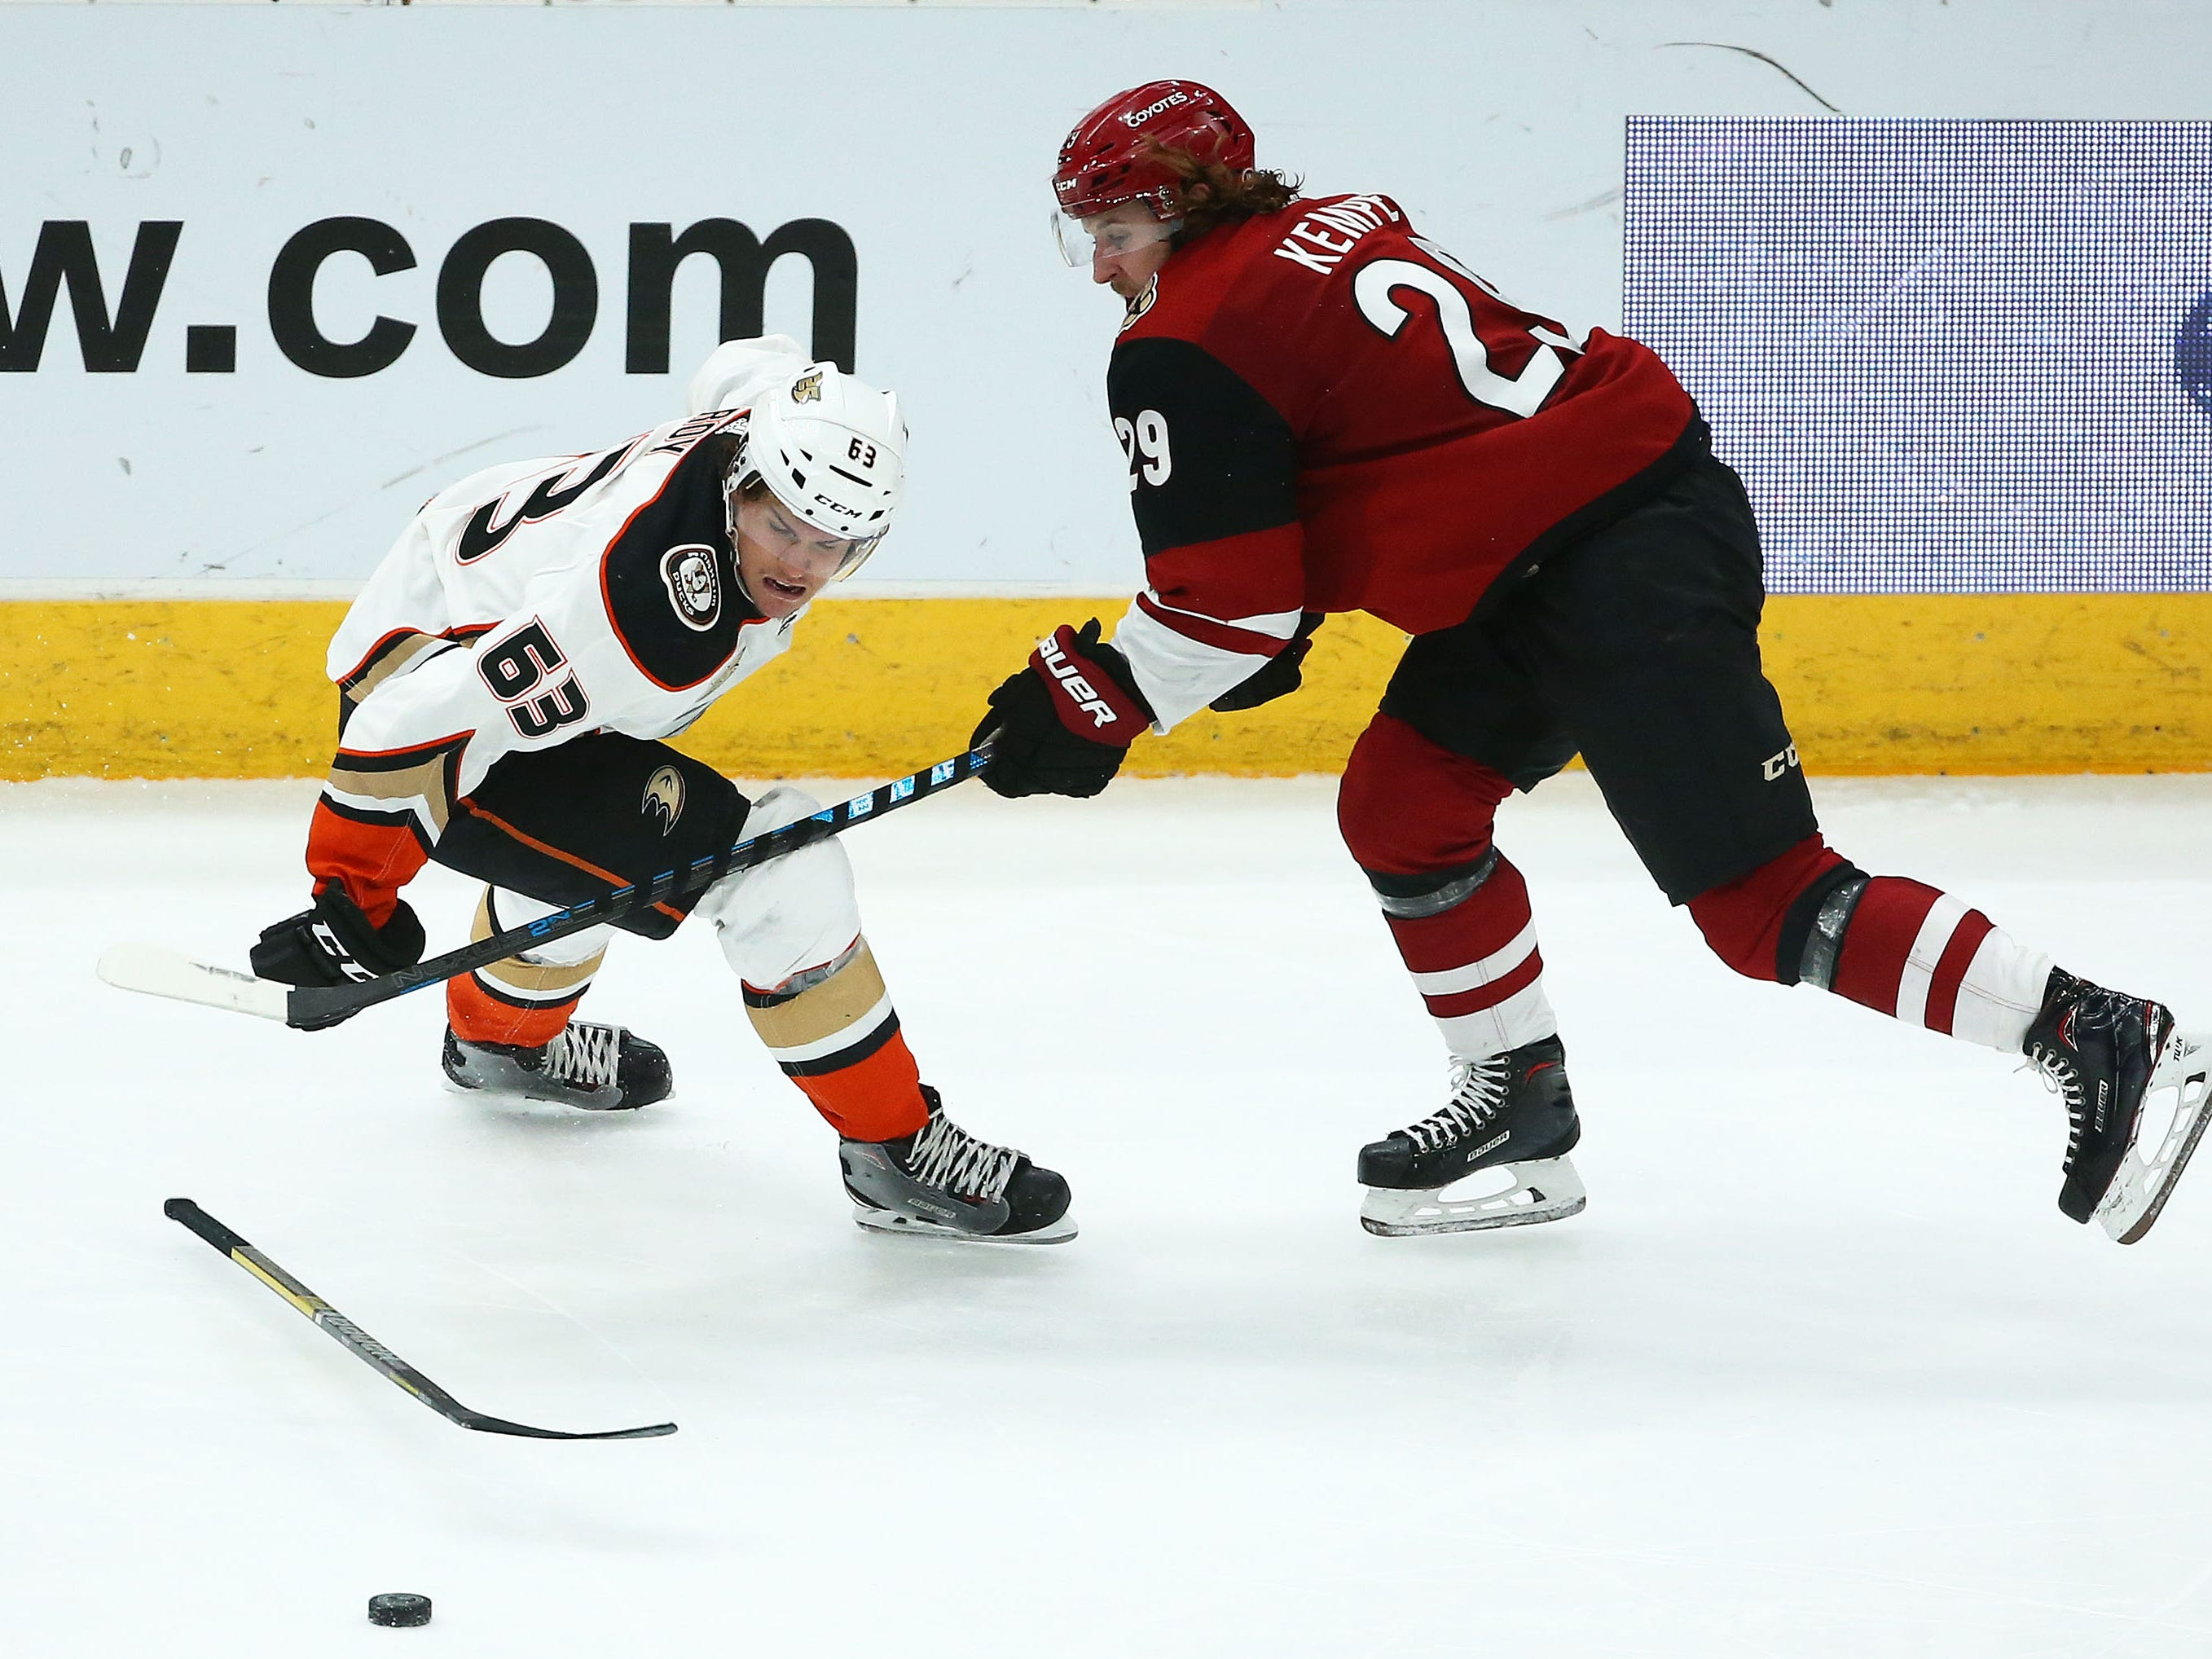 Arizona Coyotes right wing Mario Kempe (29) is called for slashing against Anaheim Ducks left wing Kevin Roy (63) in the third period on Mar. 5, 2019, at Gila River Arena in Glendale, Ariz.